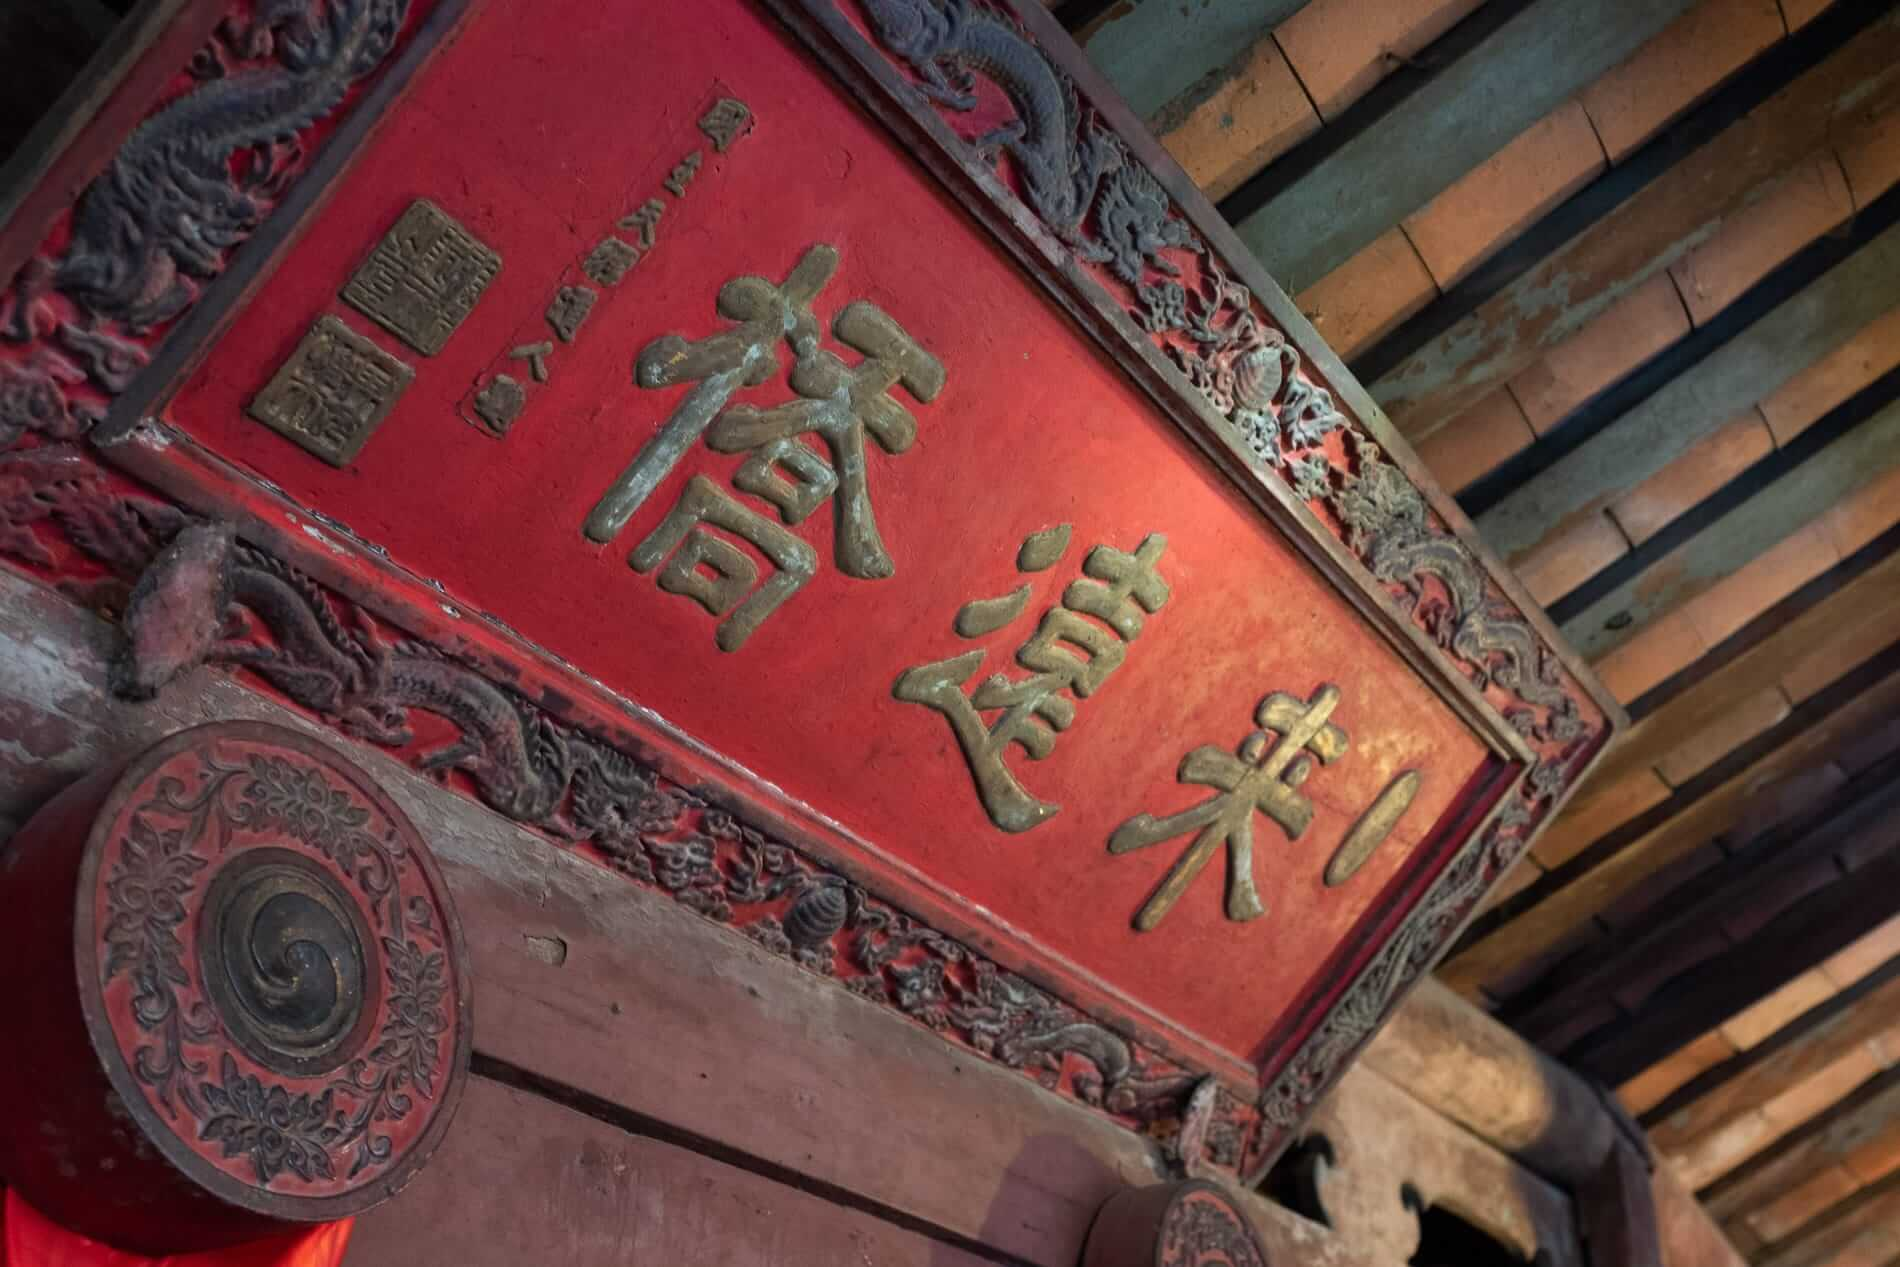 Chinese characters at the temple: The Japanese Bridge